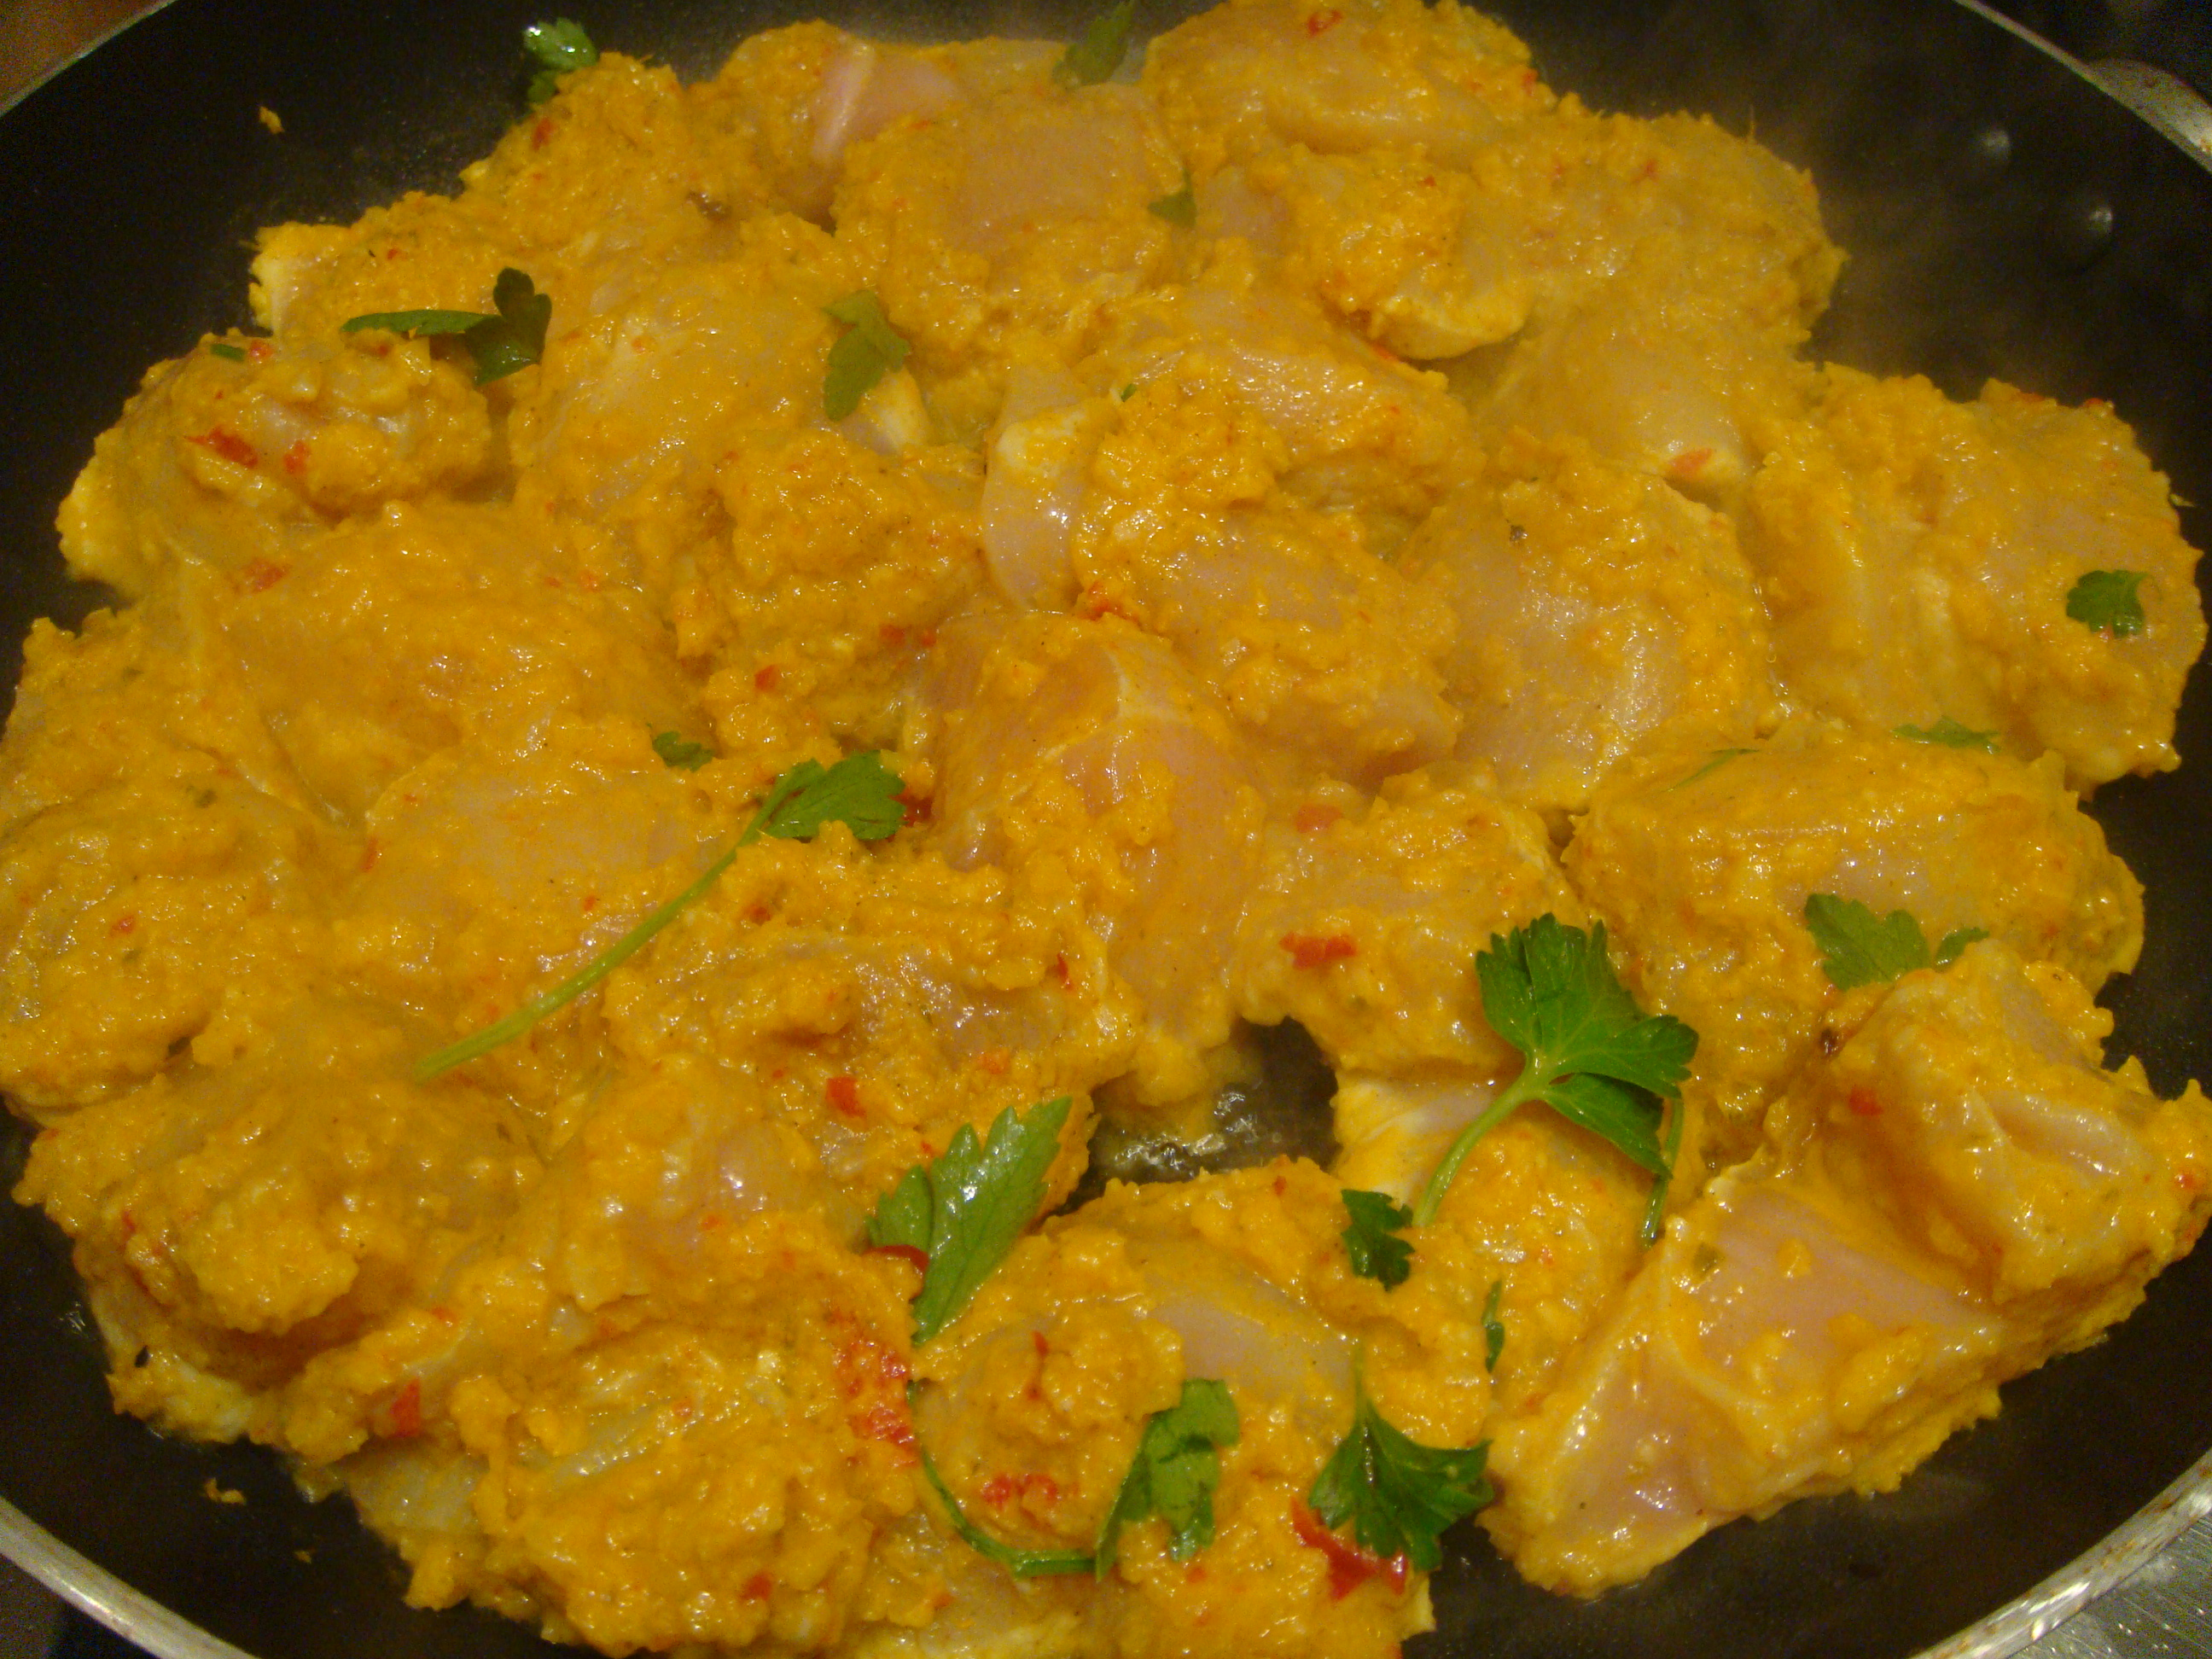 Chicken in curry marinade